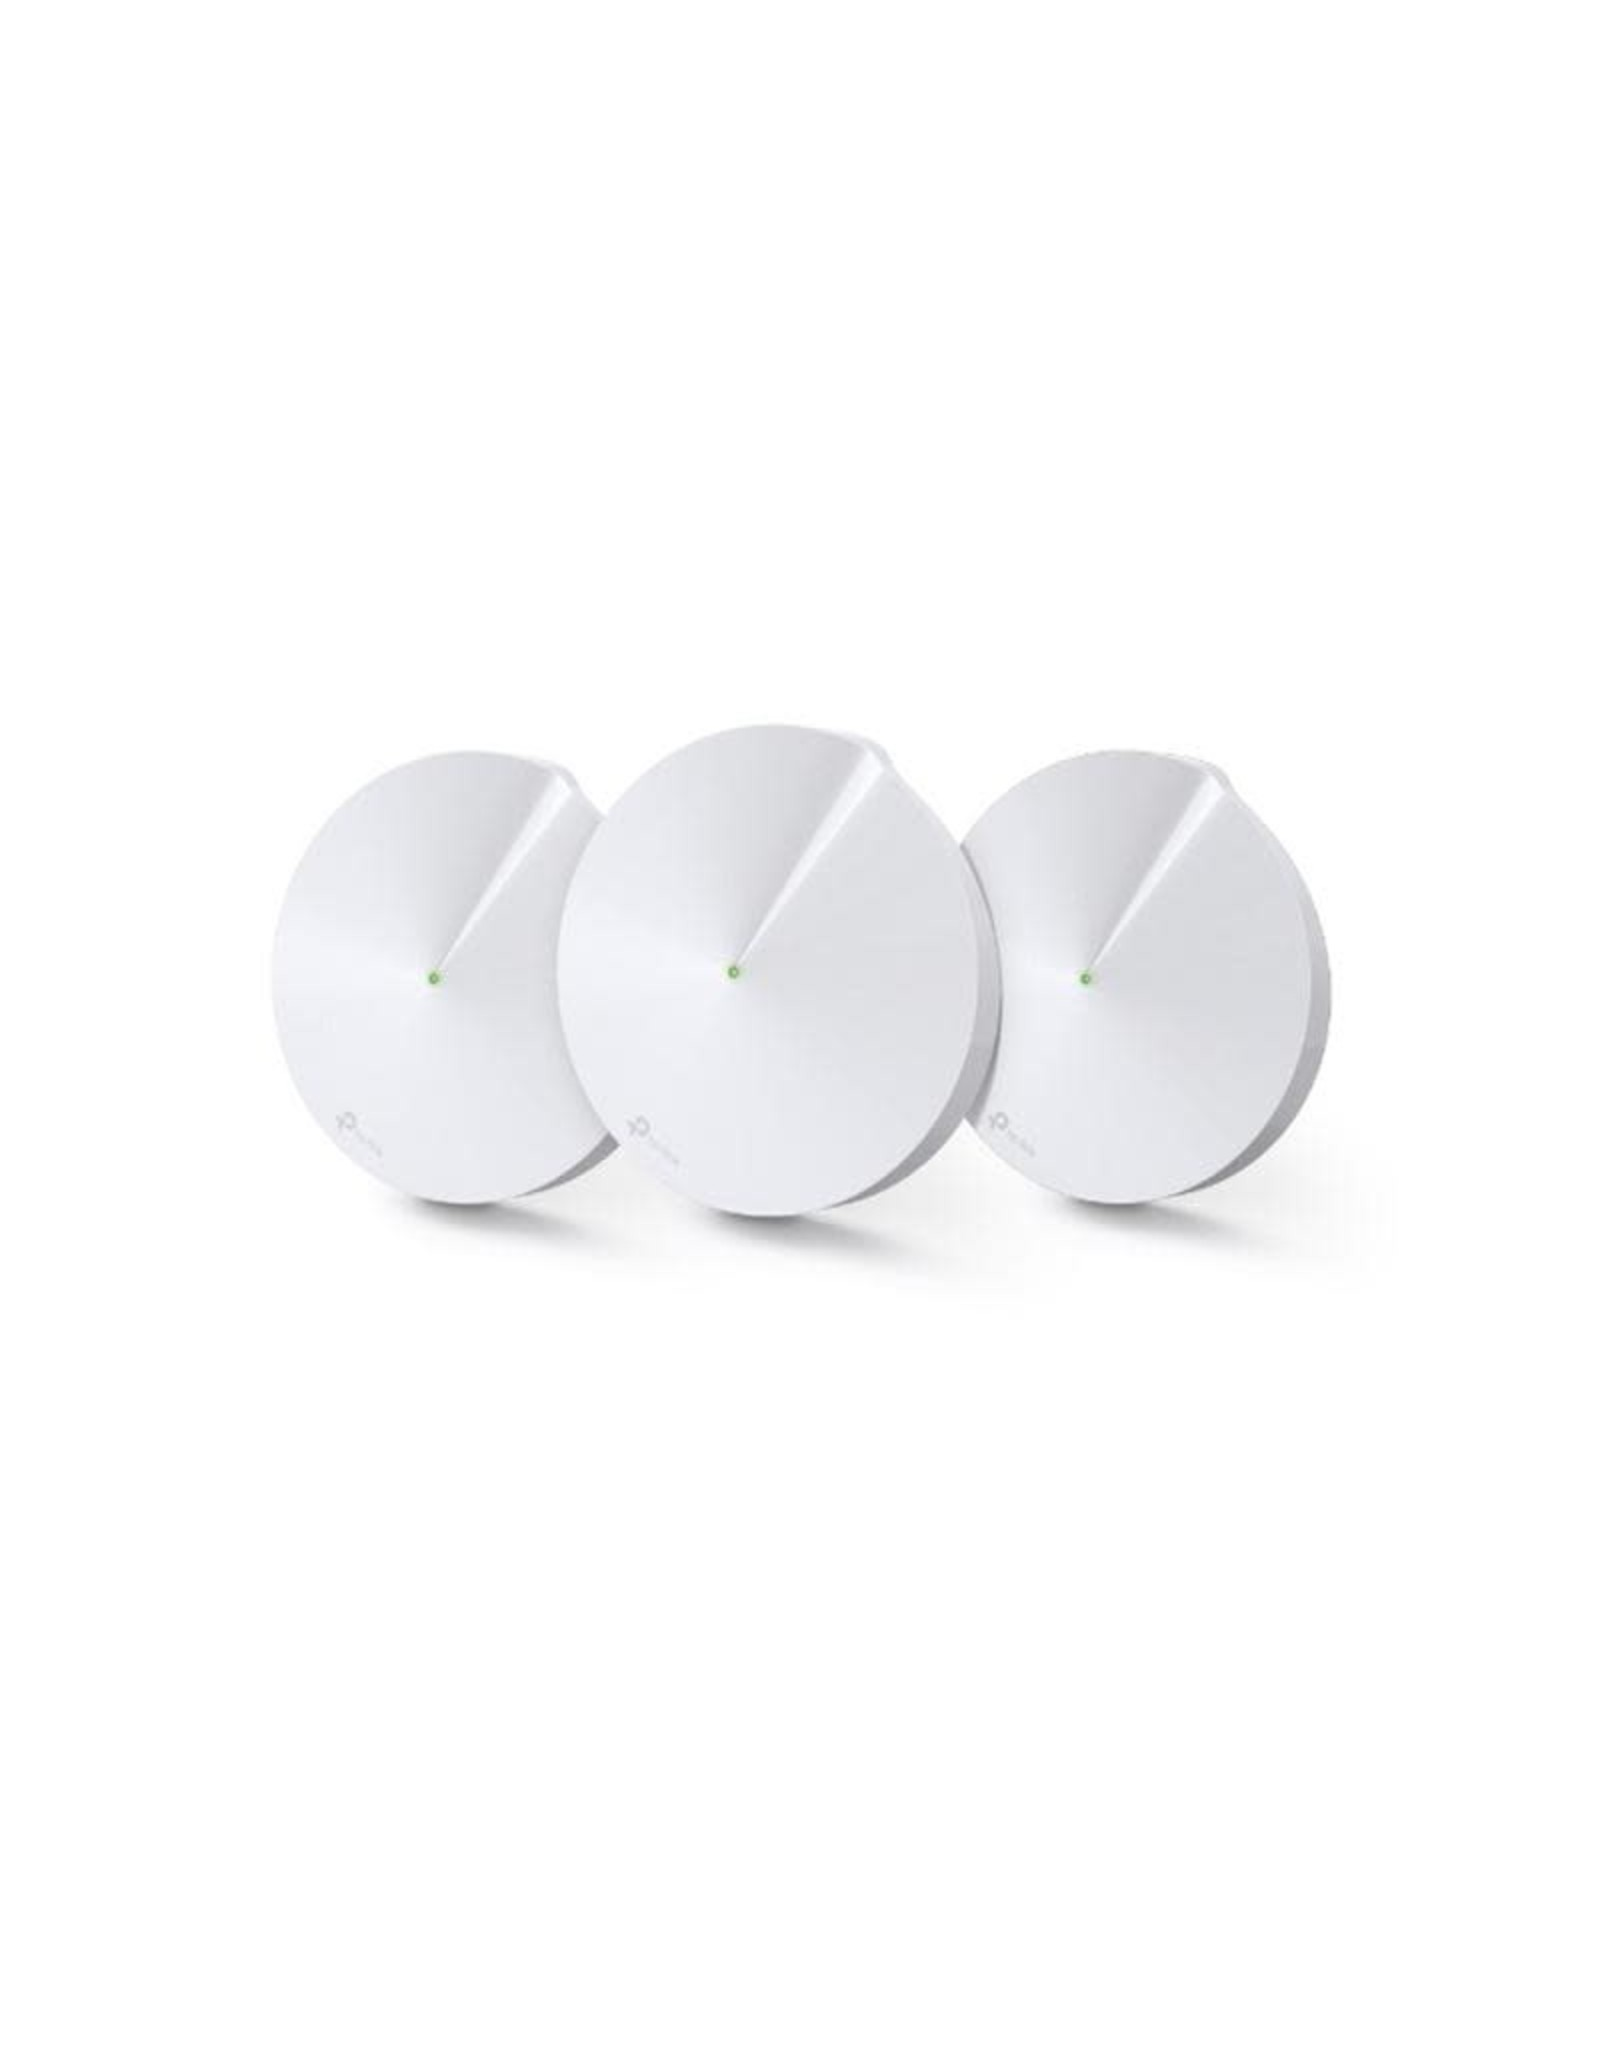 TP-Link TP-Link AC1300 Whole-Home Wi-Fi System Dual-Band 3 pack